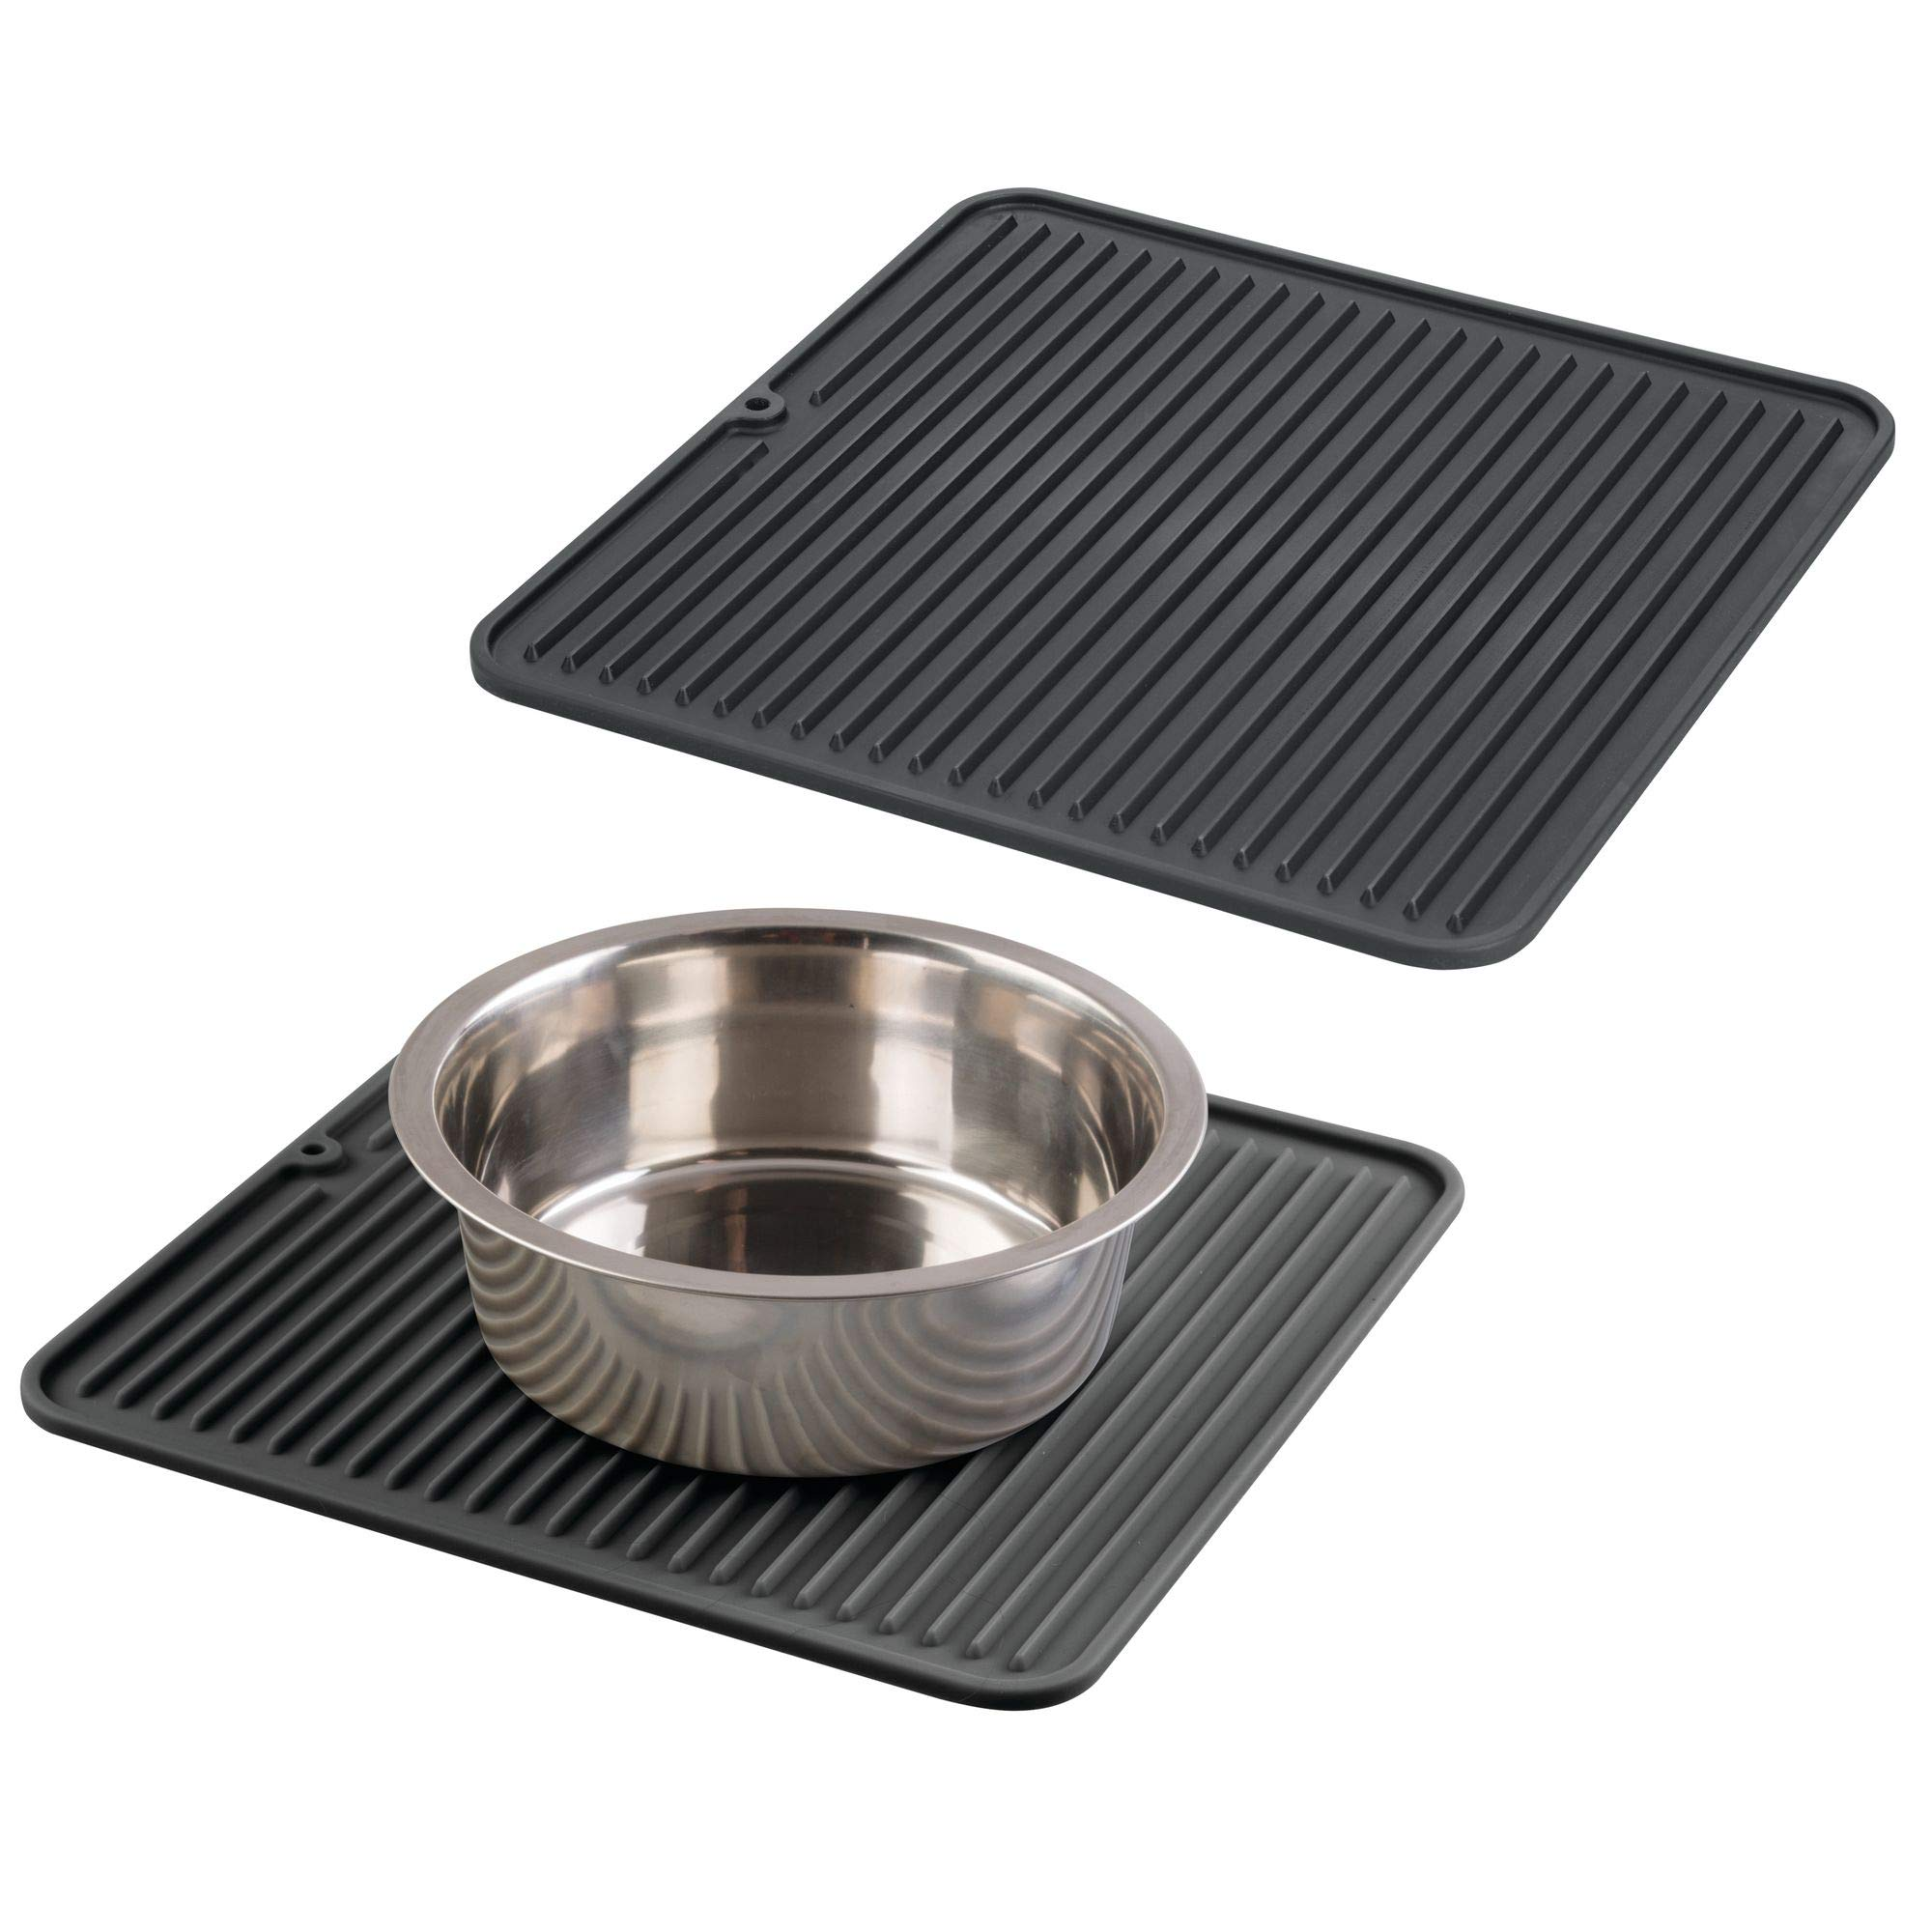 mDesign Pet Food and Water Bowl Feeding Mat for Cats or Dogs - Pack of 2, Black